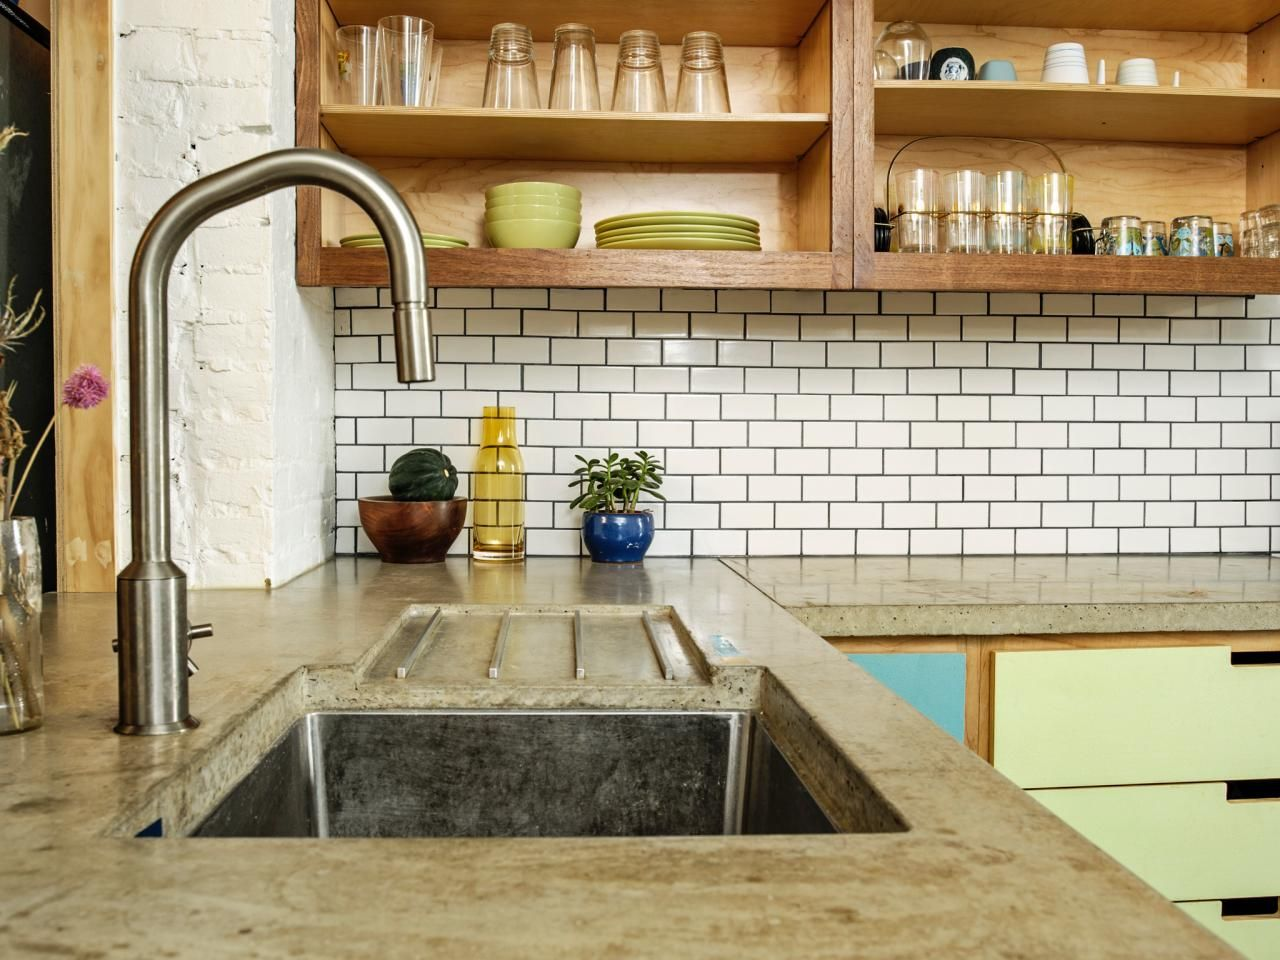 10 High-End Kitchen Countertop Choices | Hgtv, Concrete and Countertop